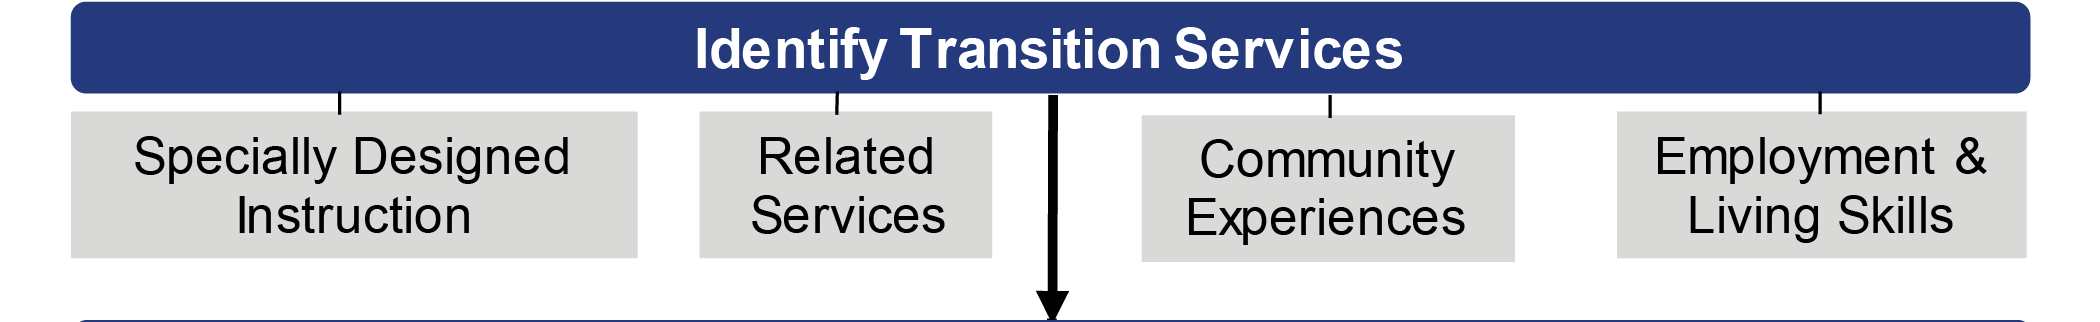 SVG Flowchart Image - Identify Transition Services